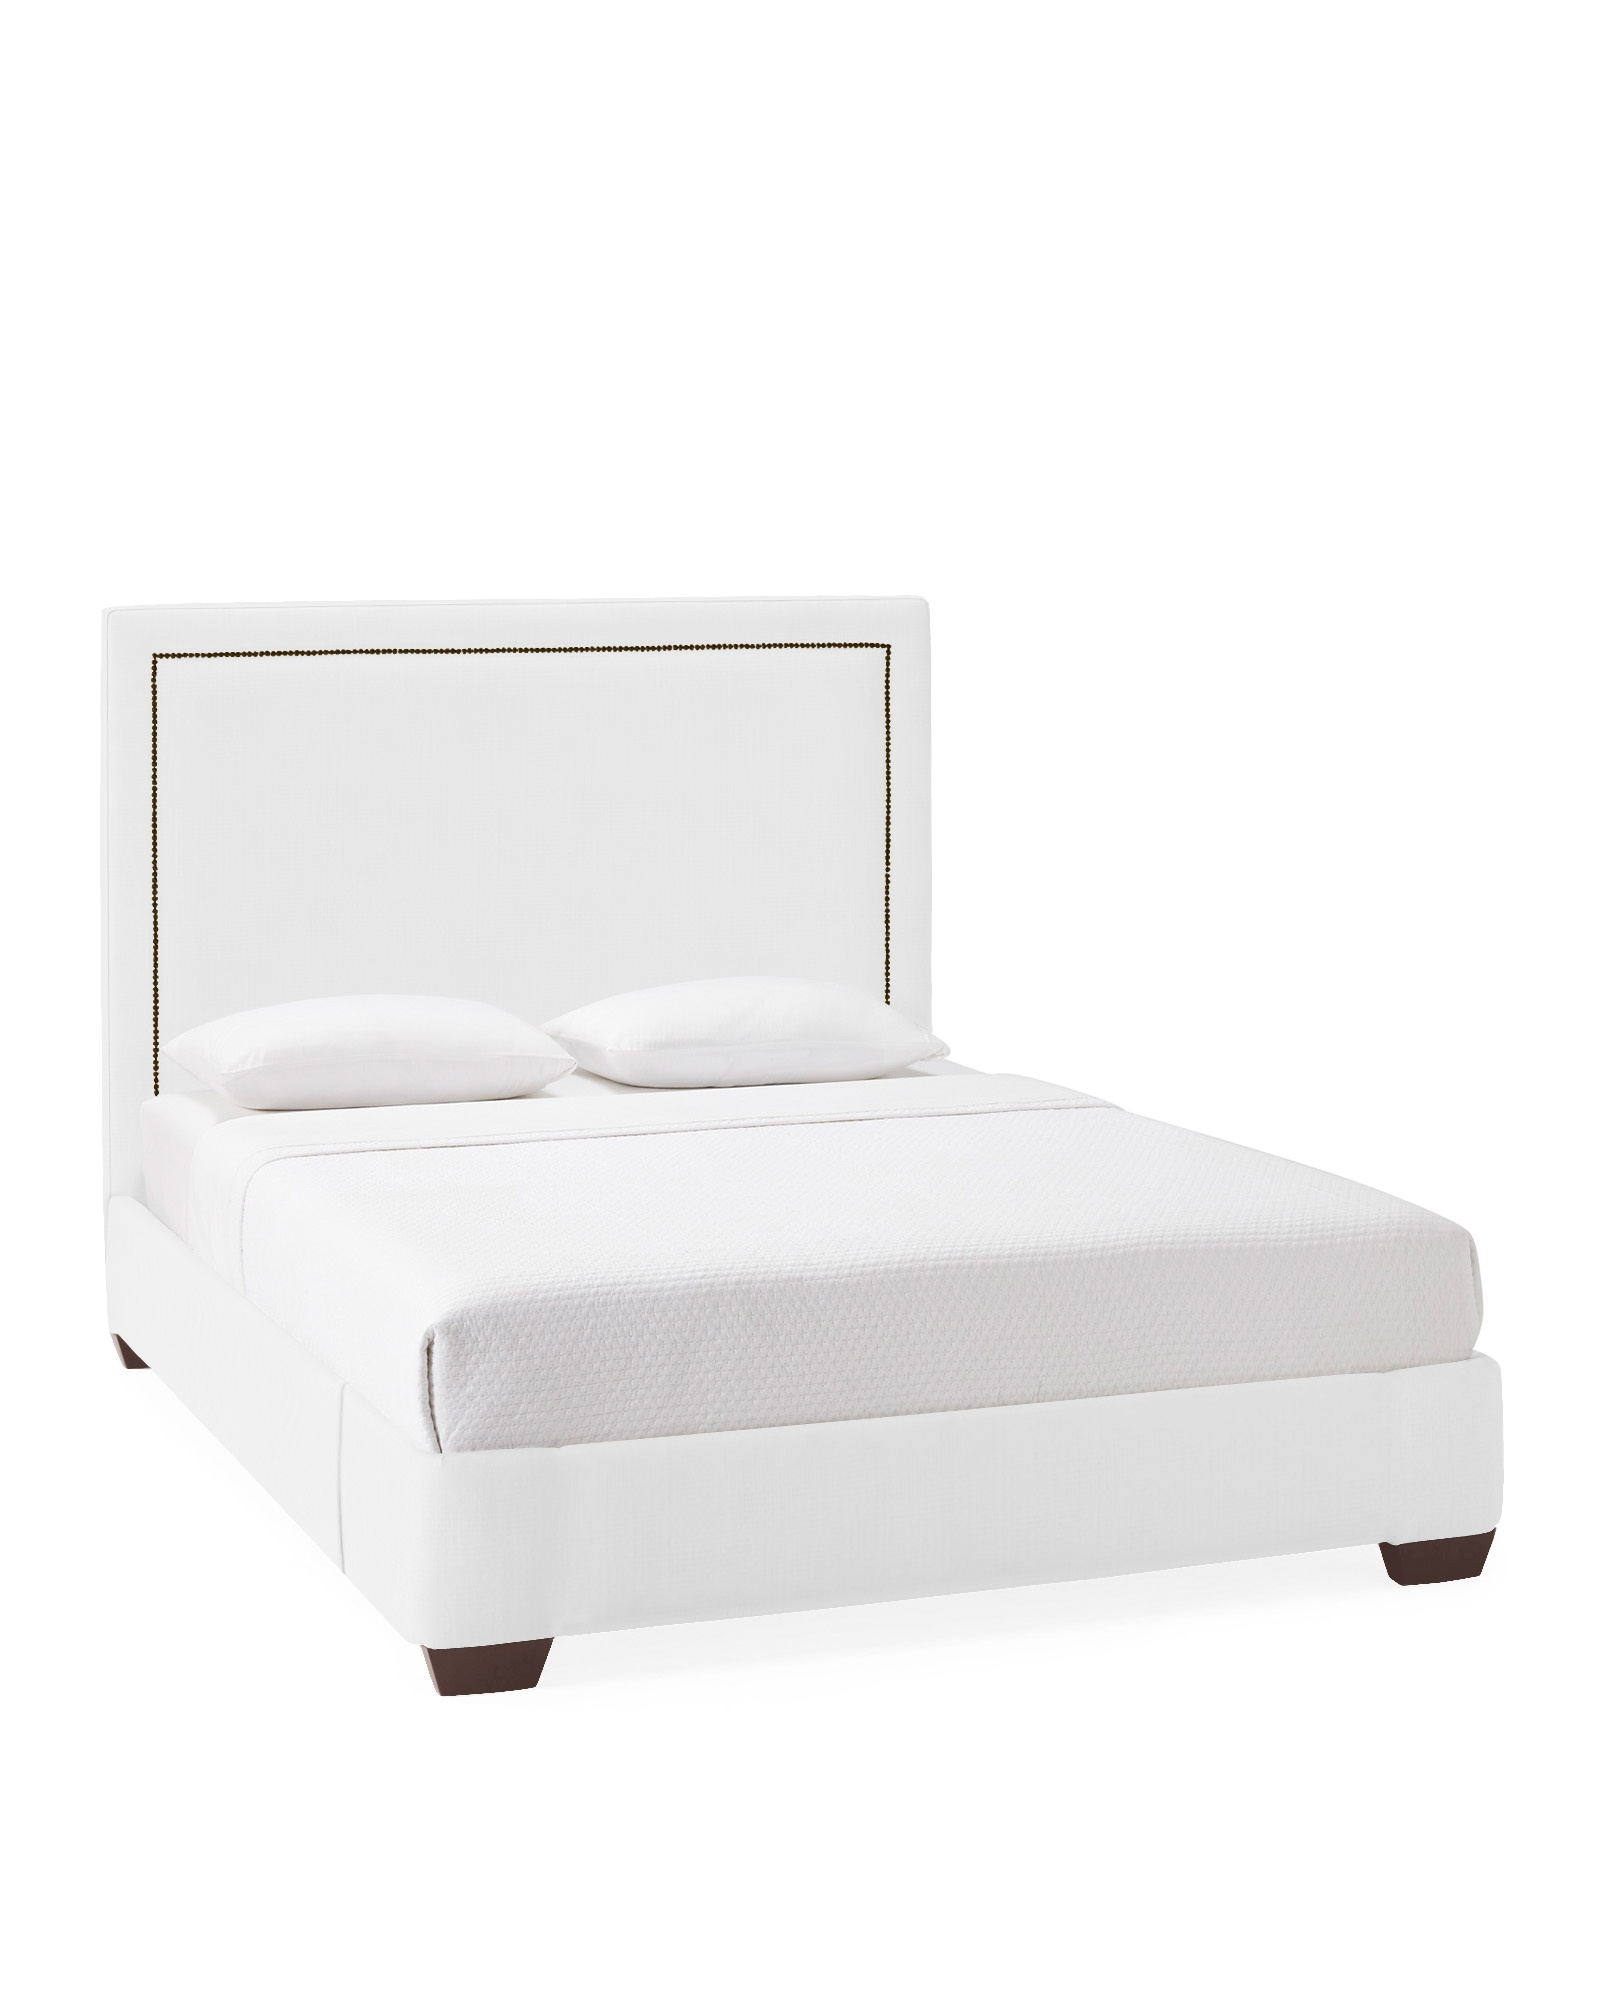 Tall Octavia Bed with Nailheads